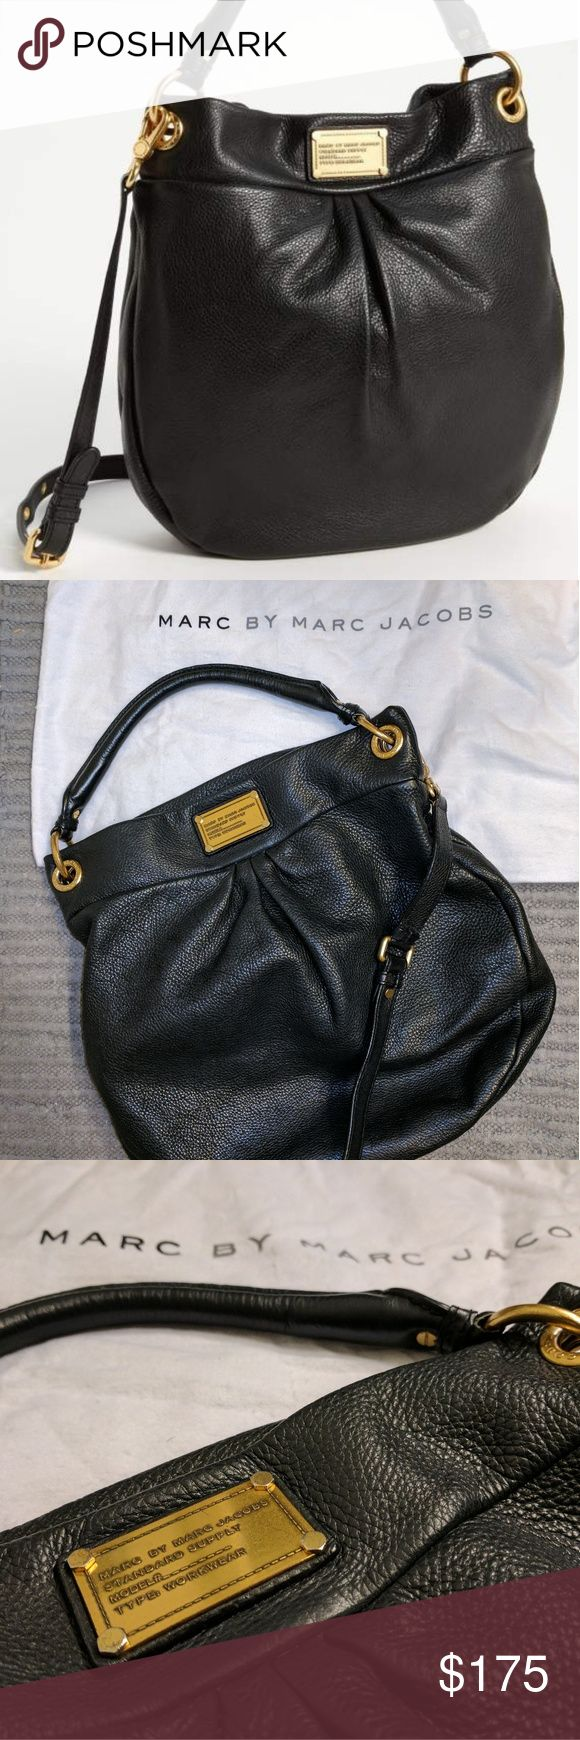 Marc Jacobs Classic Q Hillier Hobo Excellent condition! Authentic Classic Hillier hobo bag by Marc by Marc Jacobs. Comes with dust bag. Interior is in excellent condition. Has a few light signs of wear on the straps and gold hardware per the photos, but otherwise no flaws - a beautiful and well cared for bag. Smoke free home. Marc By Marc Jacobs Bags Hobos